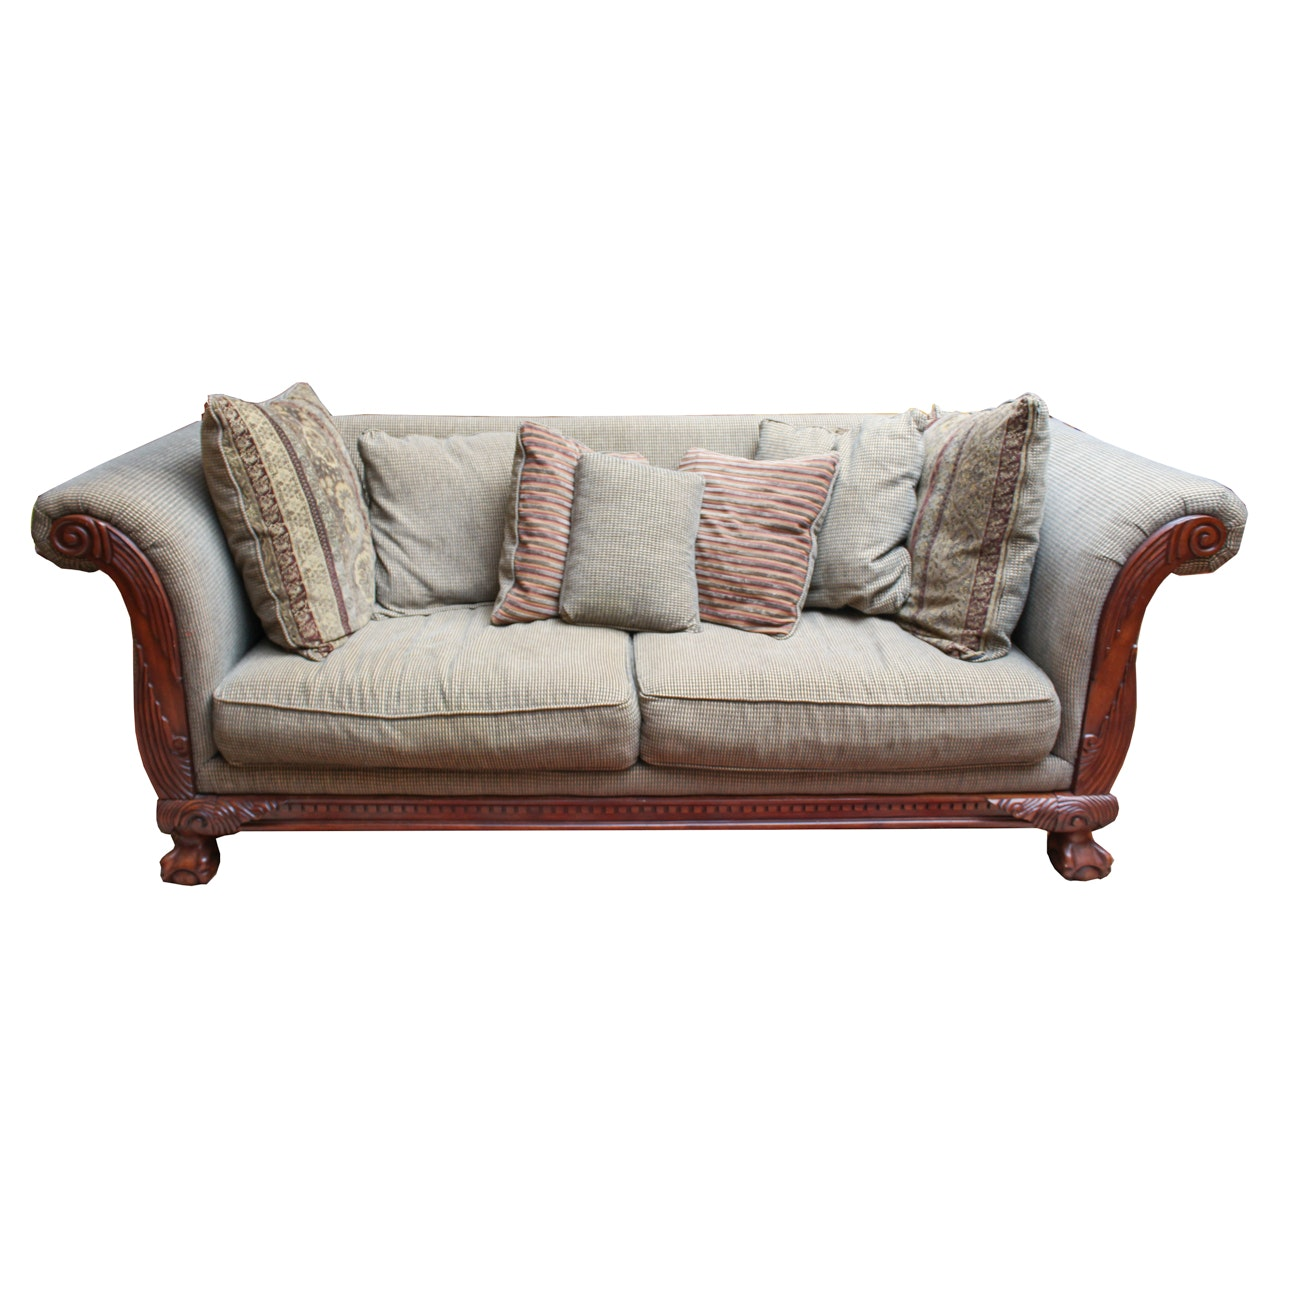 Oversized Upholstered Sofa by Klaussner Furniture